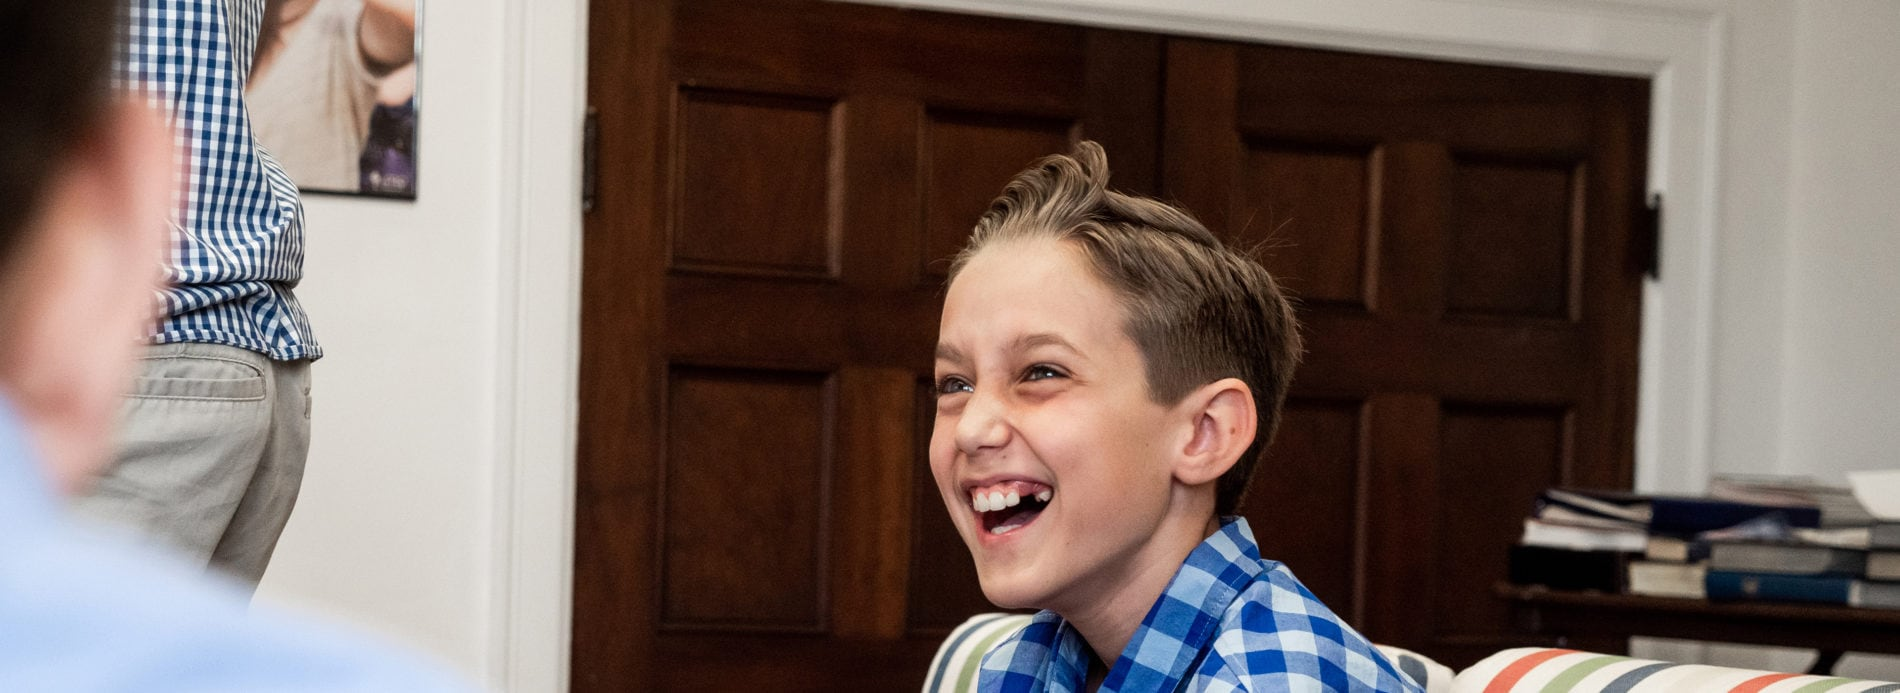 A boy smiles during middle school youth group